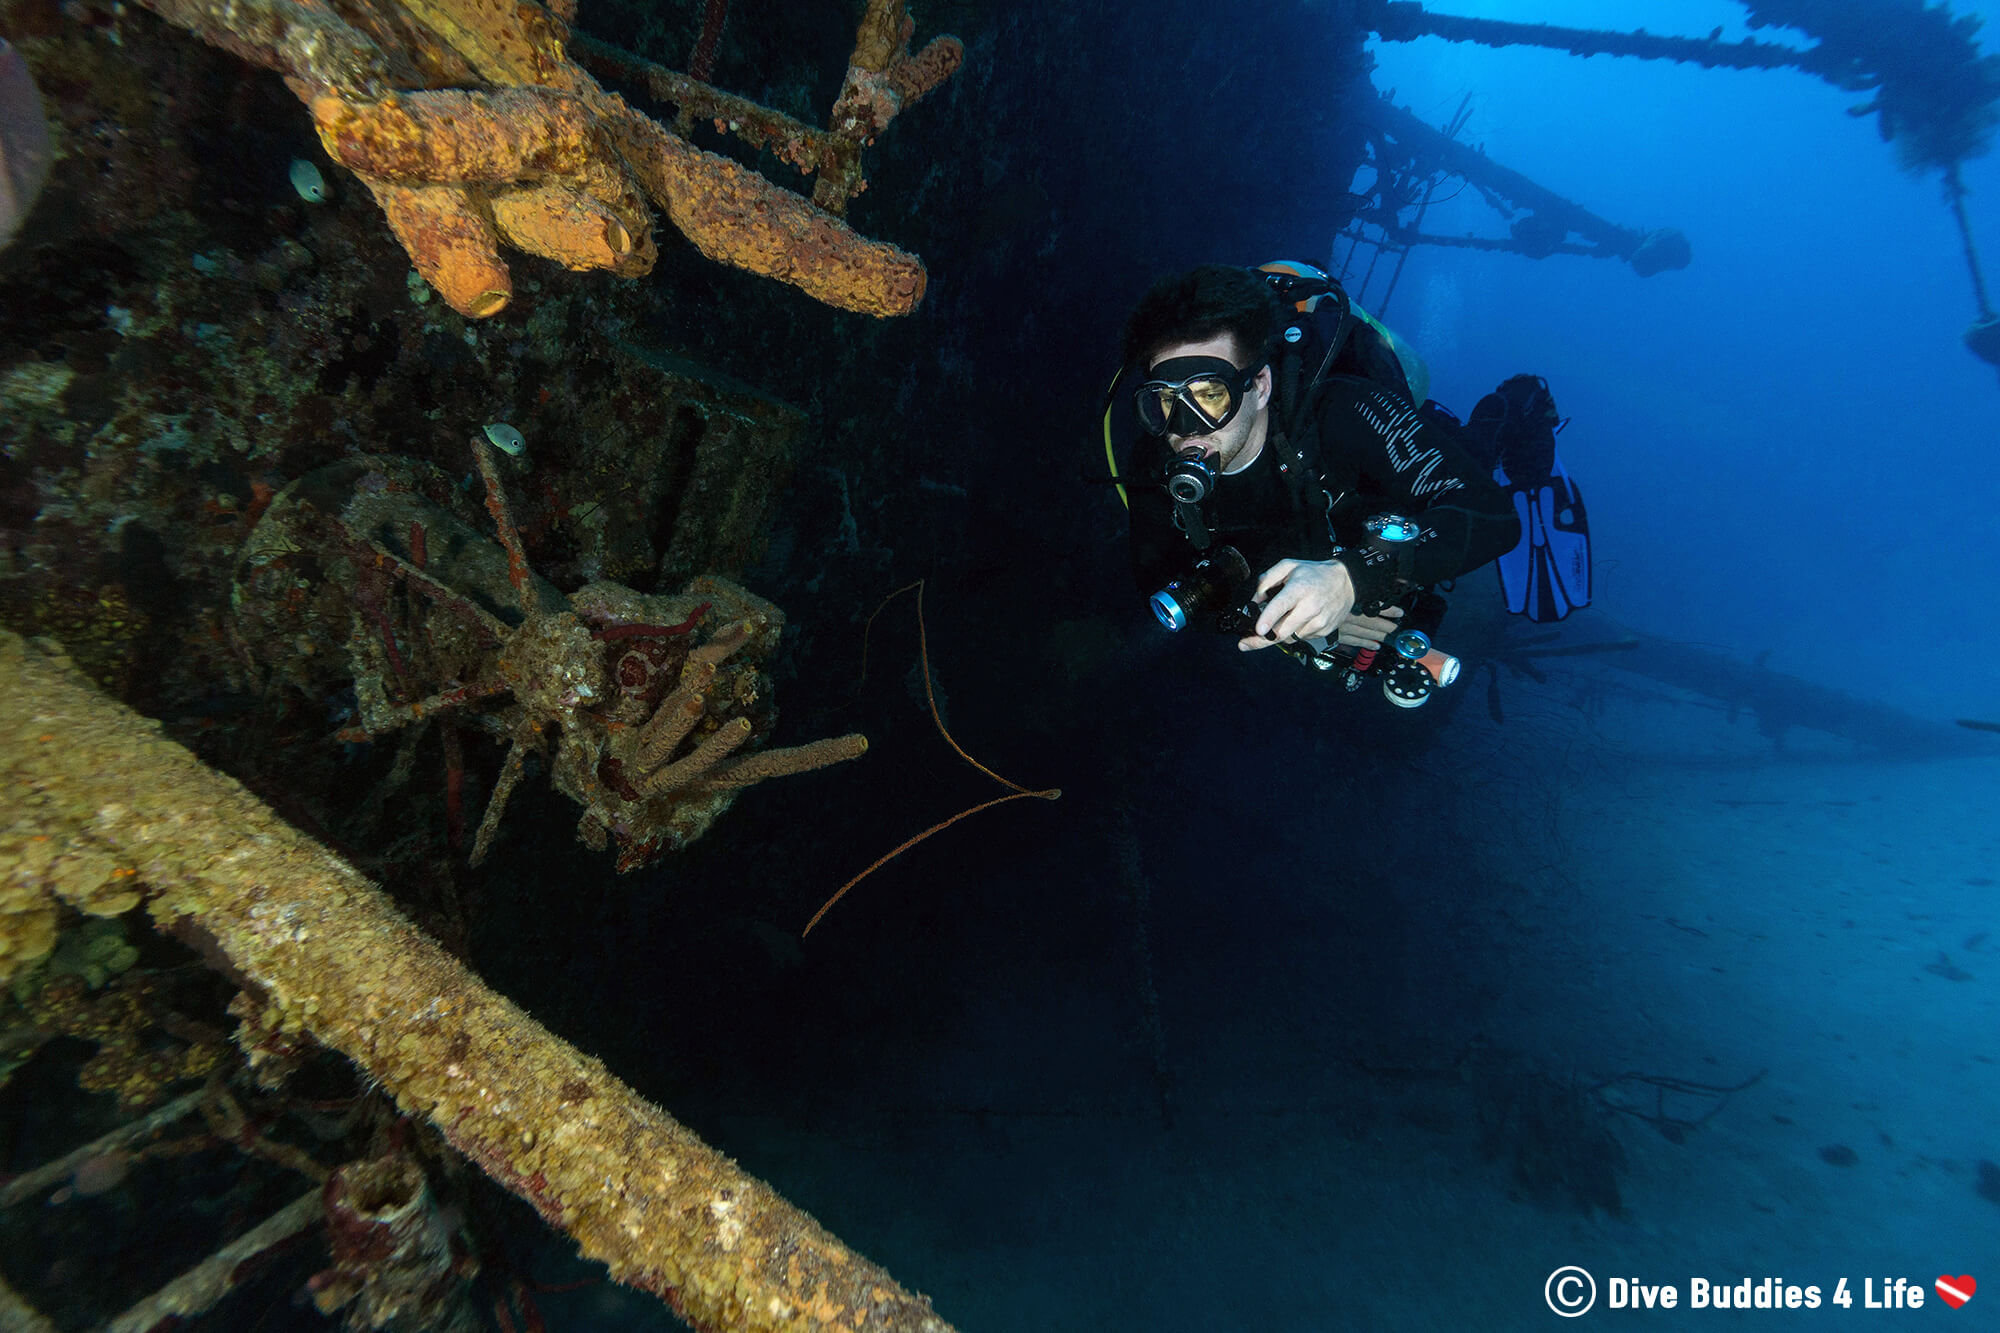 Joey Using His Flashlight And Diving The Hilma Hooker Shipwreck On The South Of Bonaire, Dutch Caribbean